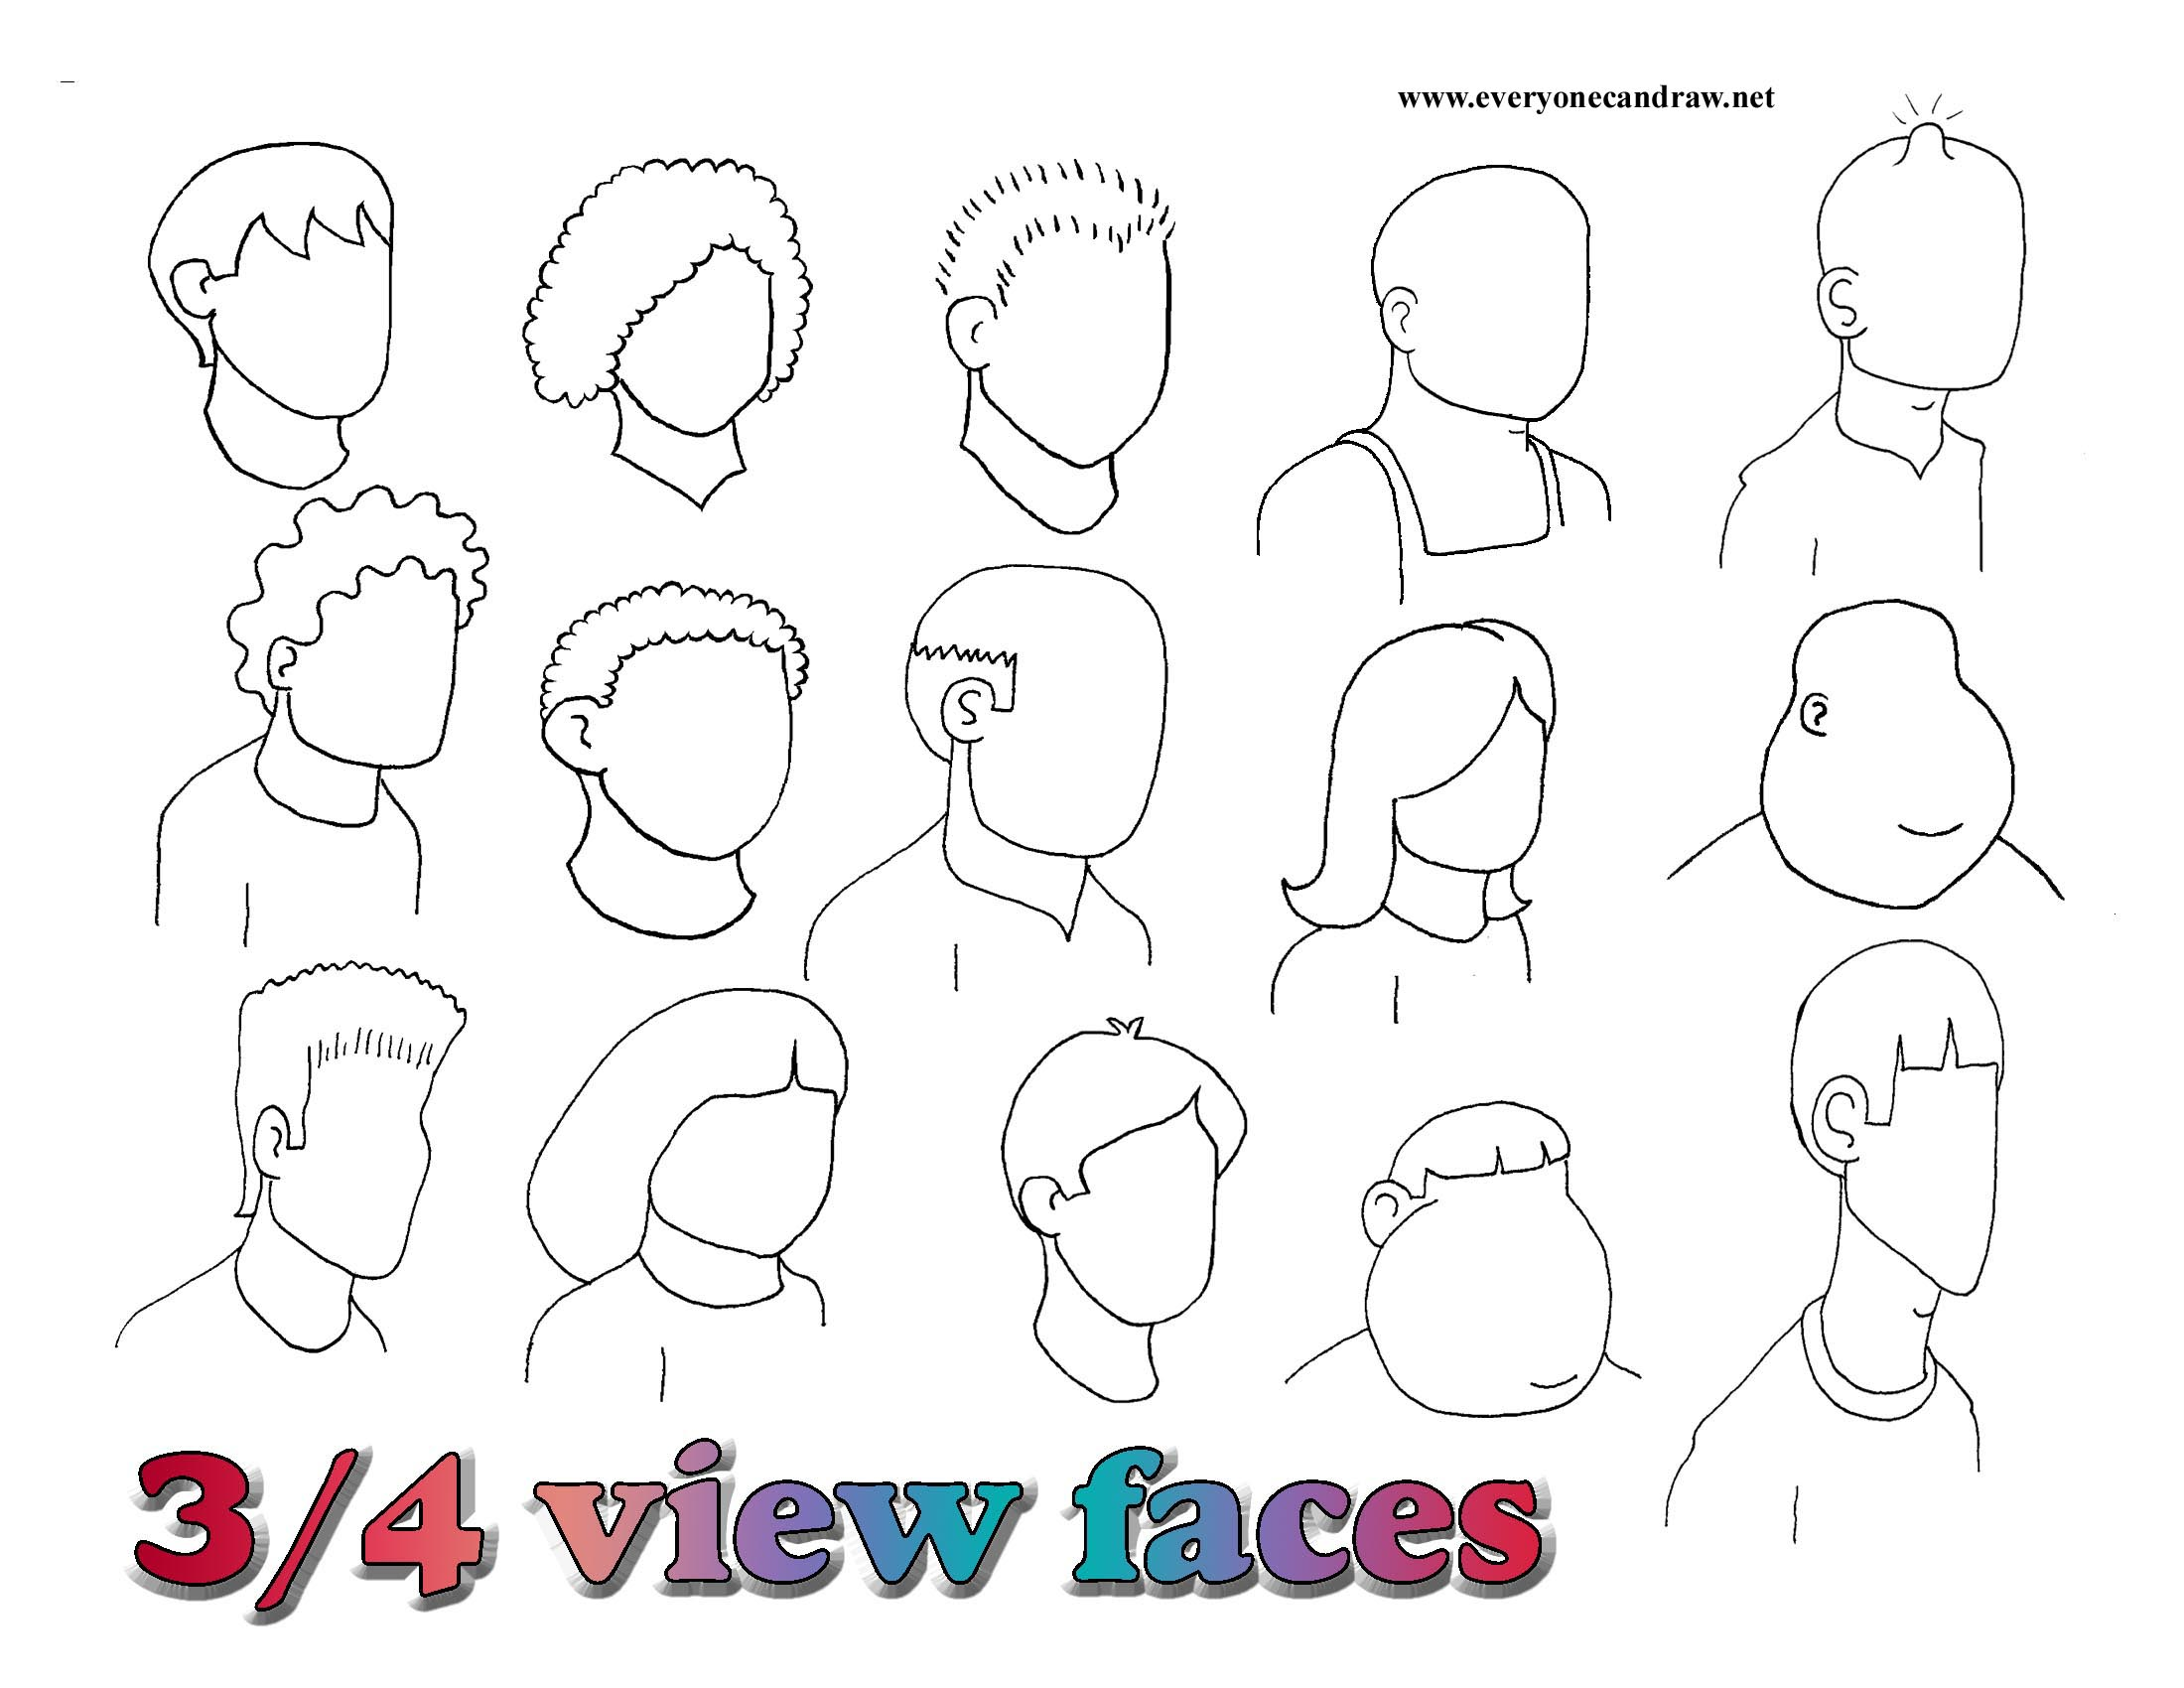 Facing right- 3-4 view faces